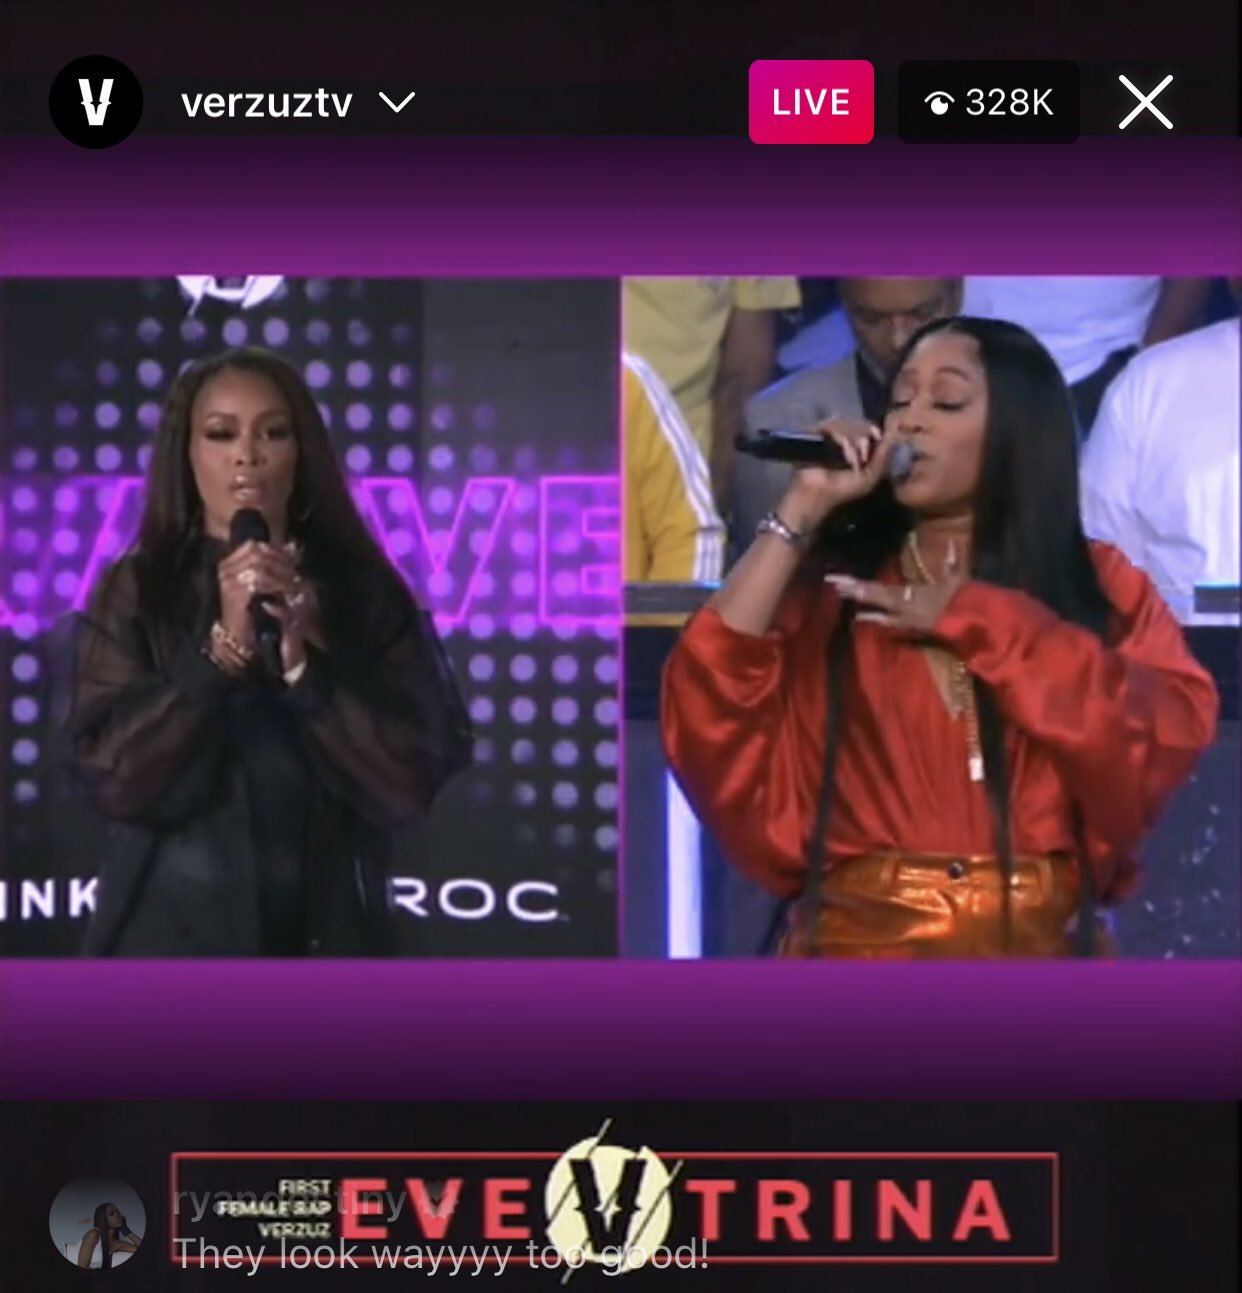 eve-and-trina-verzuz-battle-best-twitter-comments